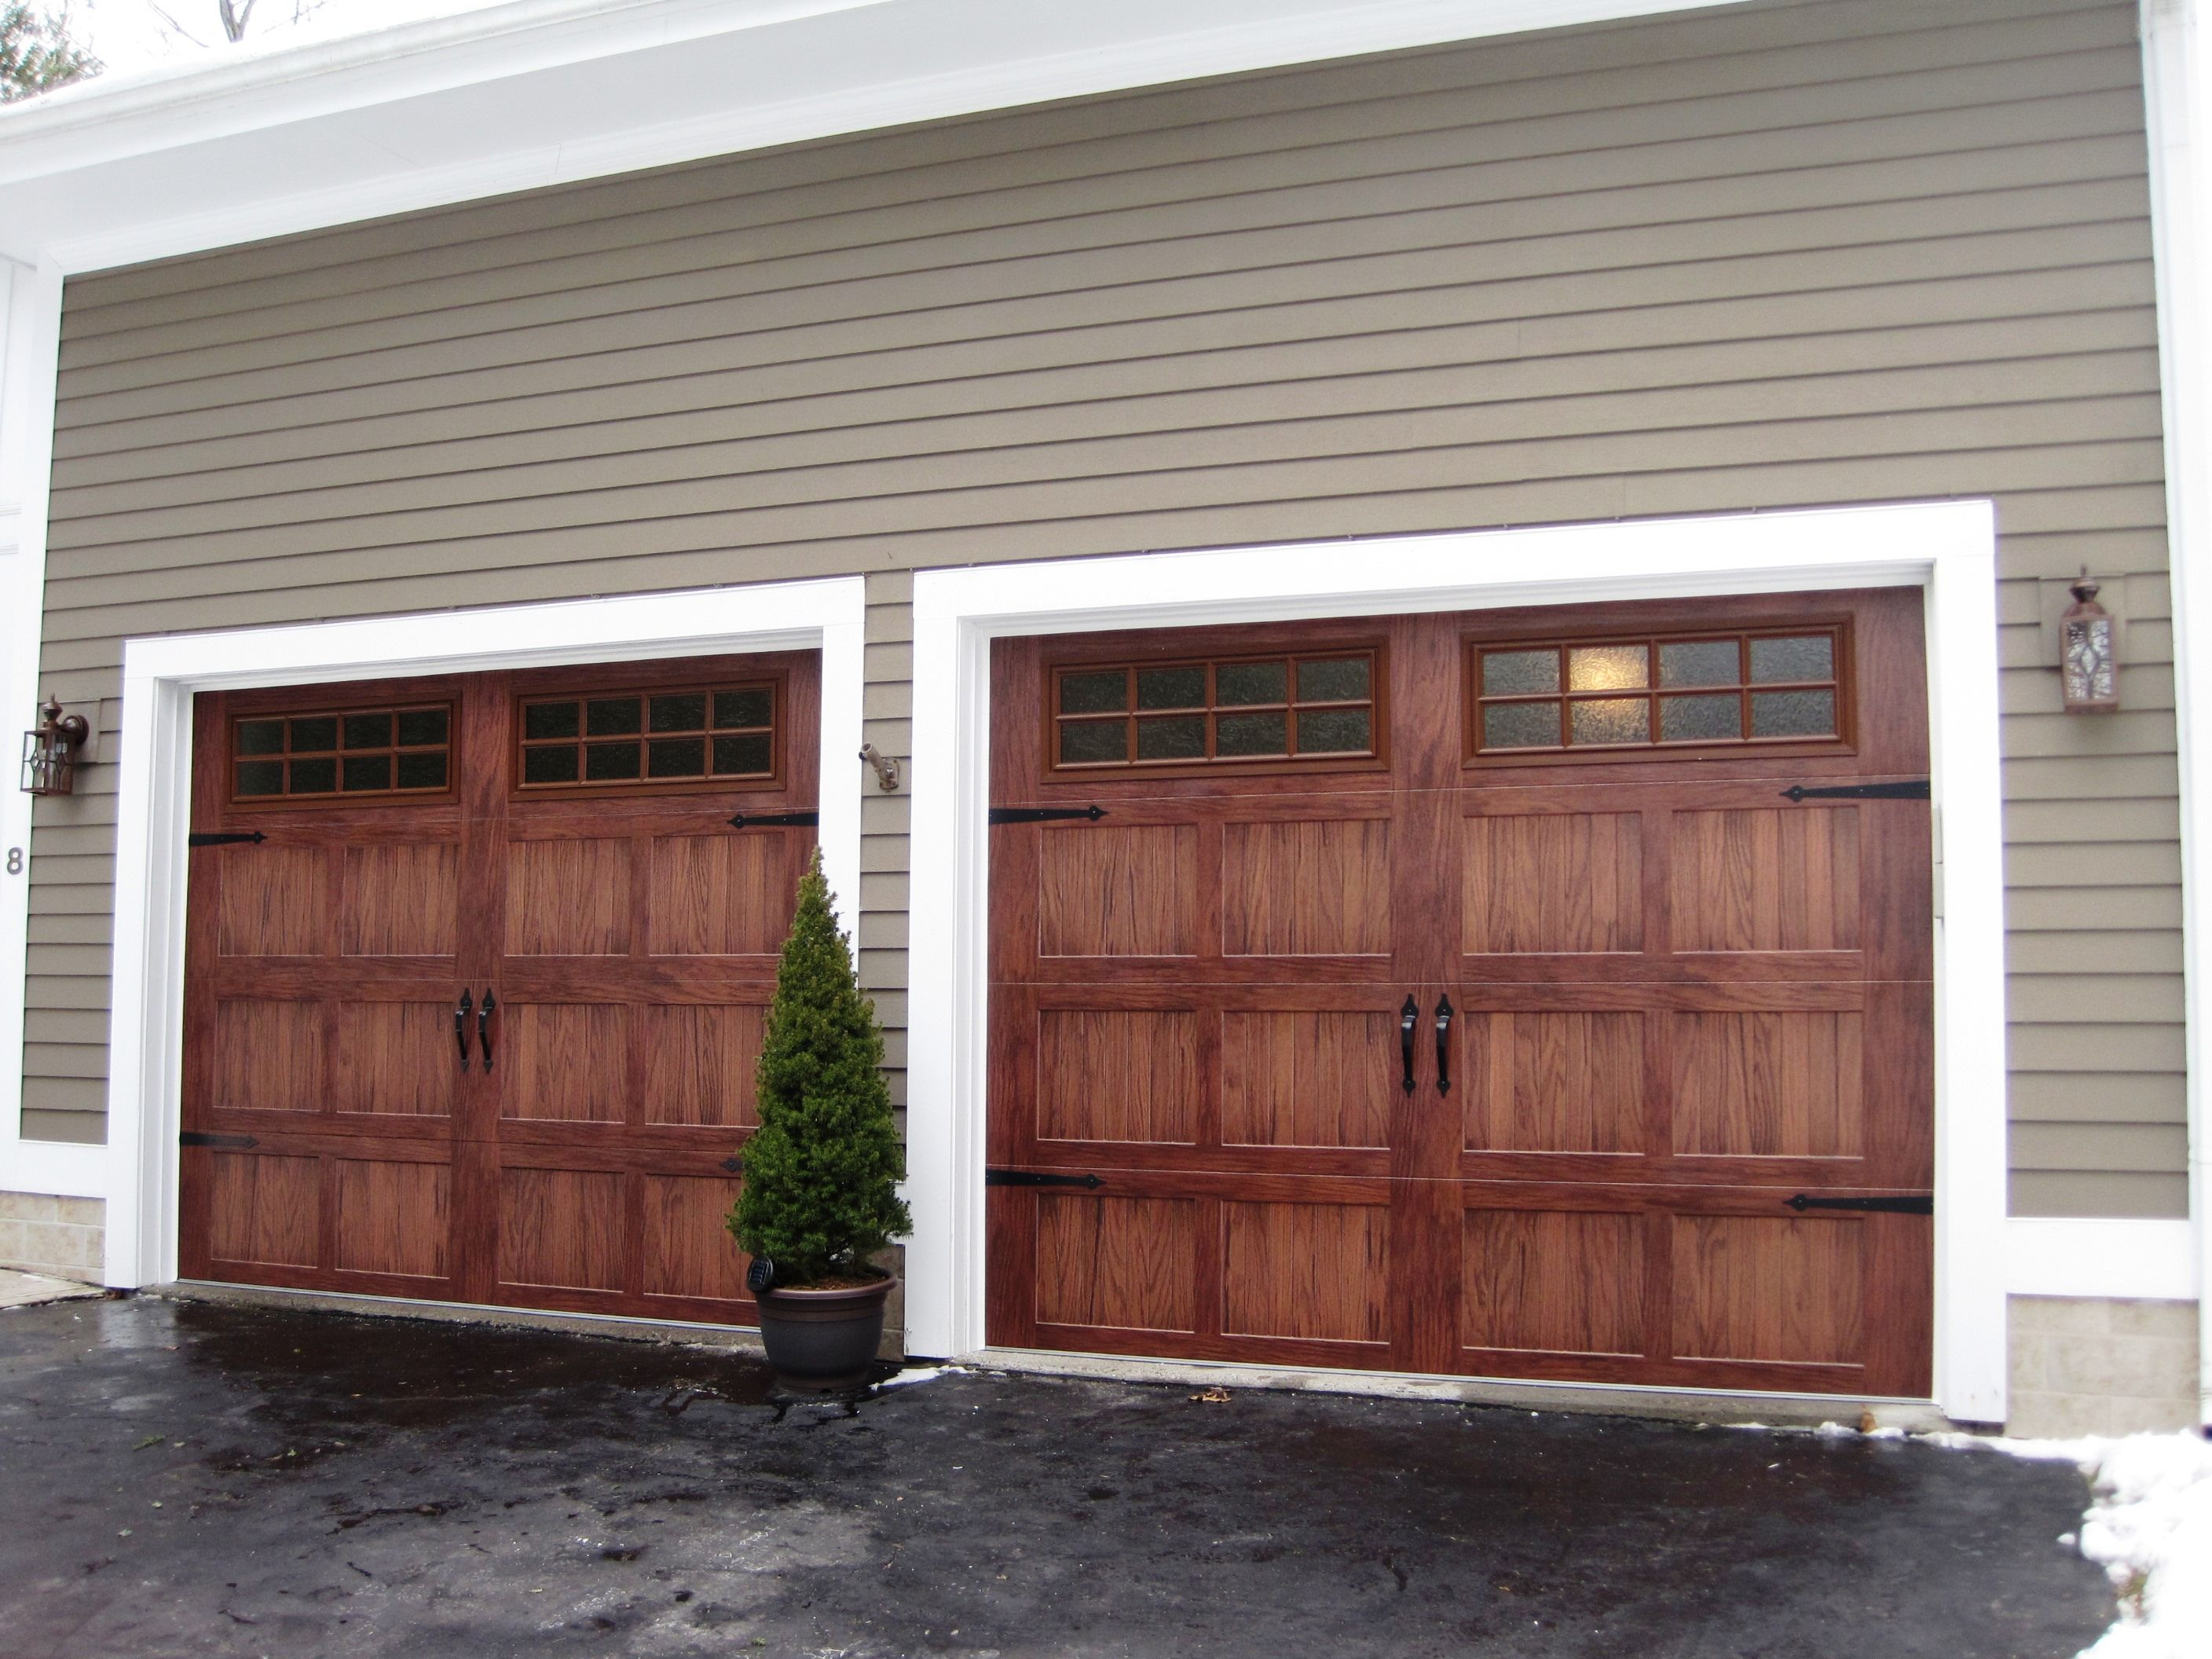 Metal garage doors that look like wood for our barn  Accents woodtones by  C H I  Overhead. Metal garage doors that look like wood for our barn  Accents